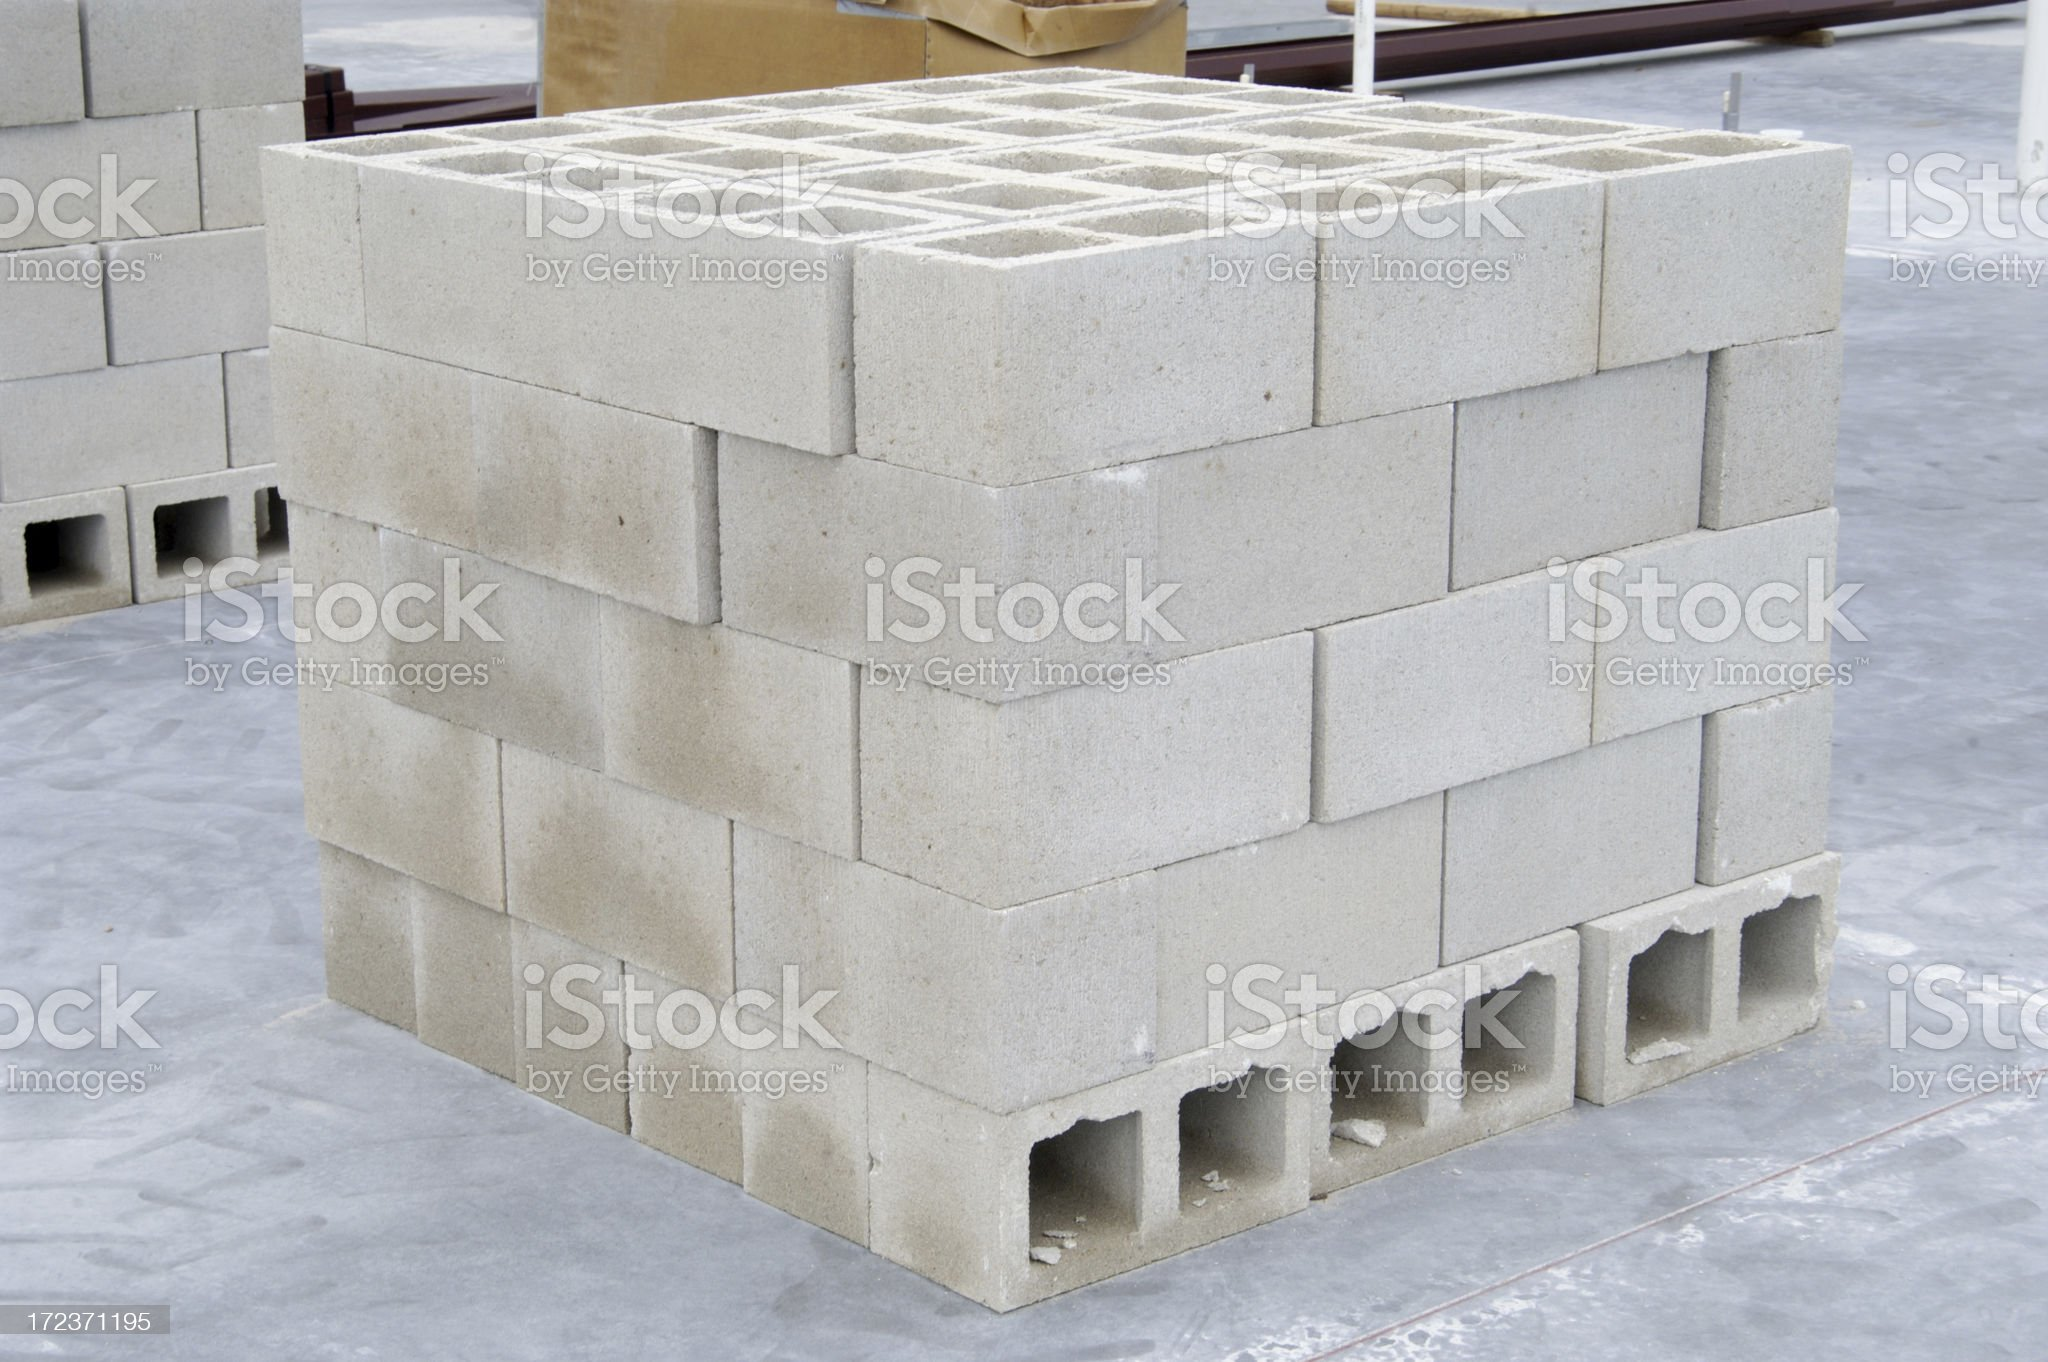 Stack of Cinder Blocks royalty-free stock photo